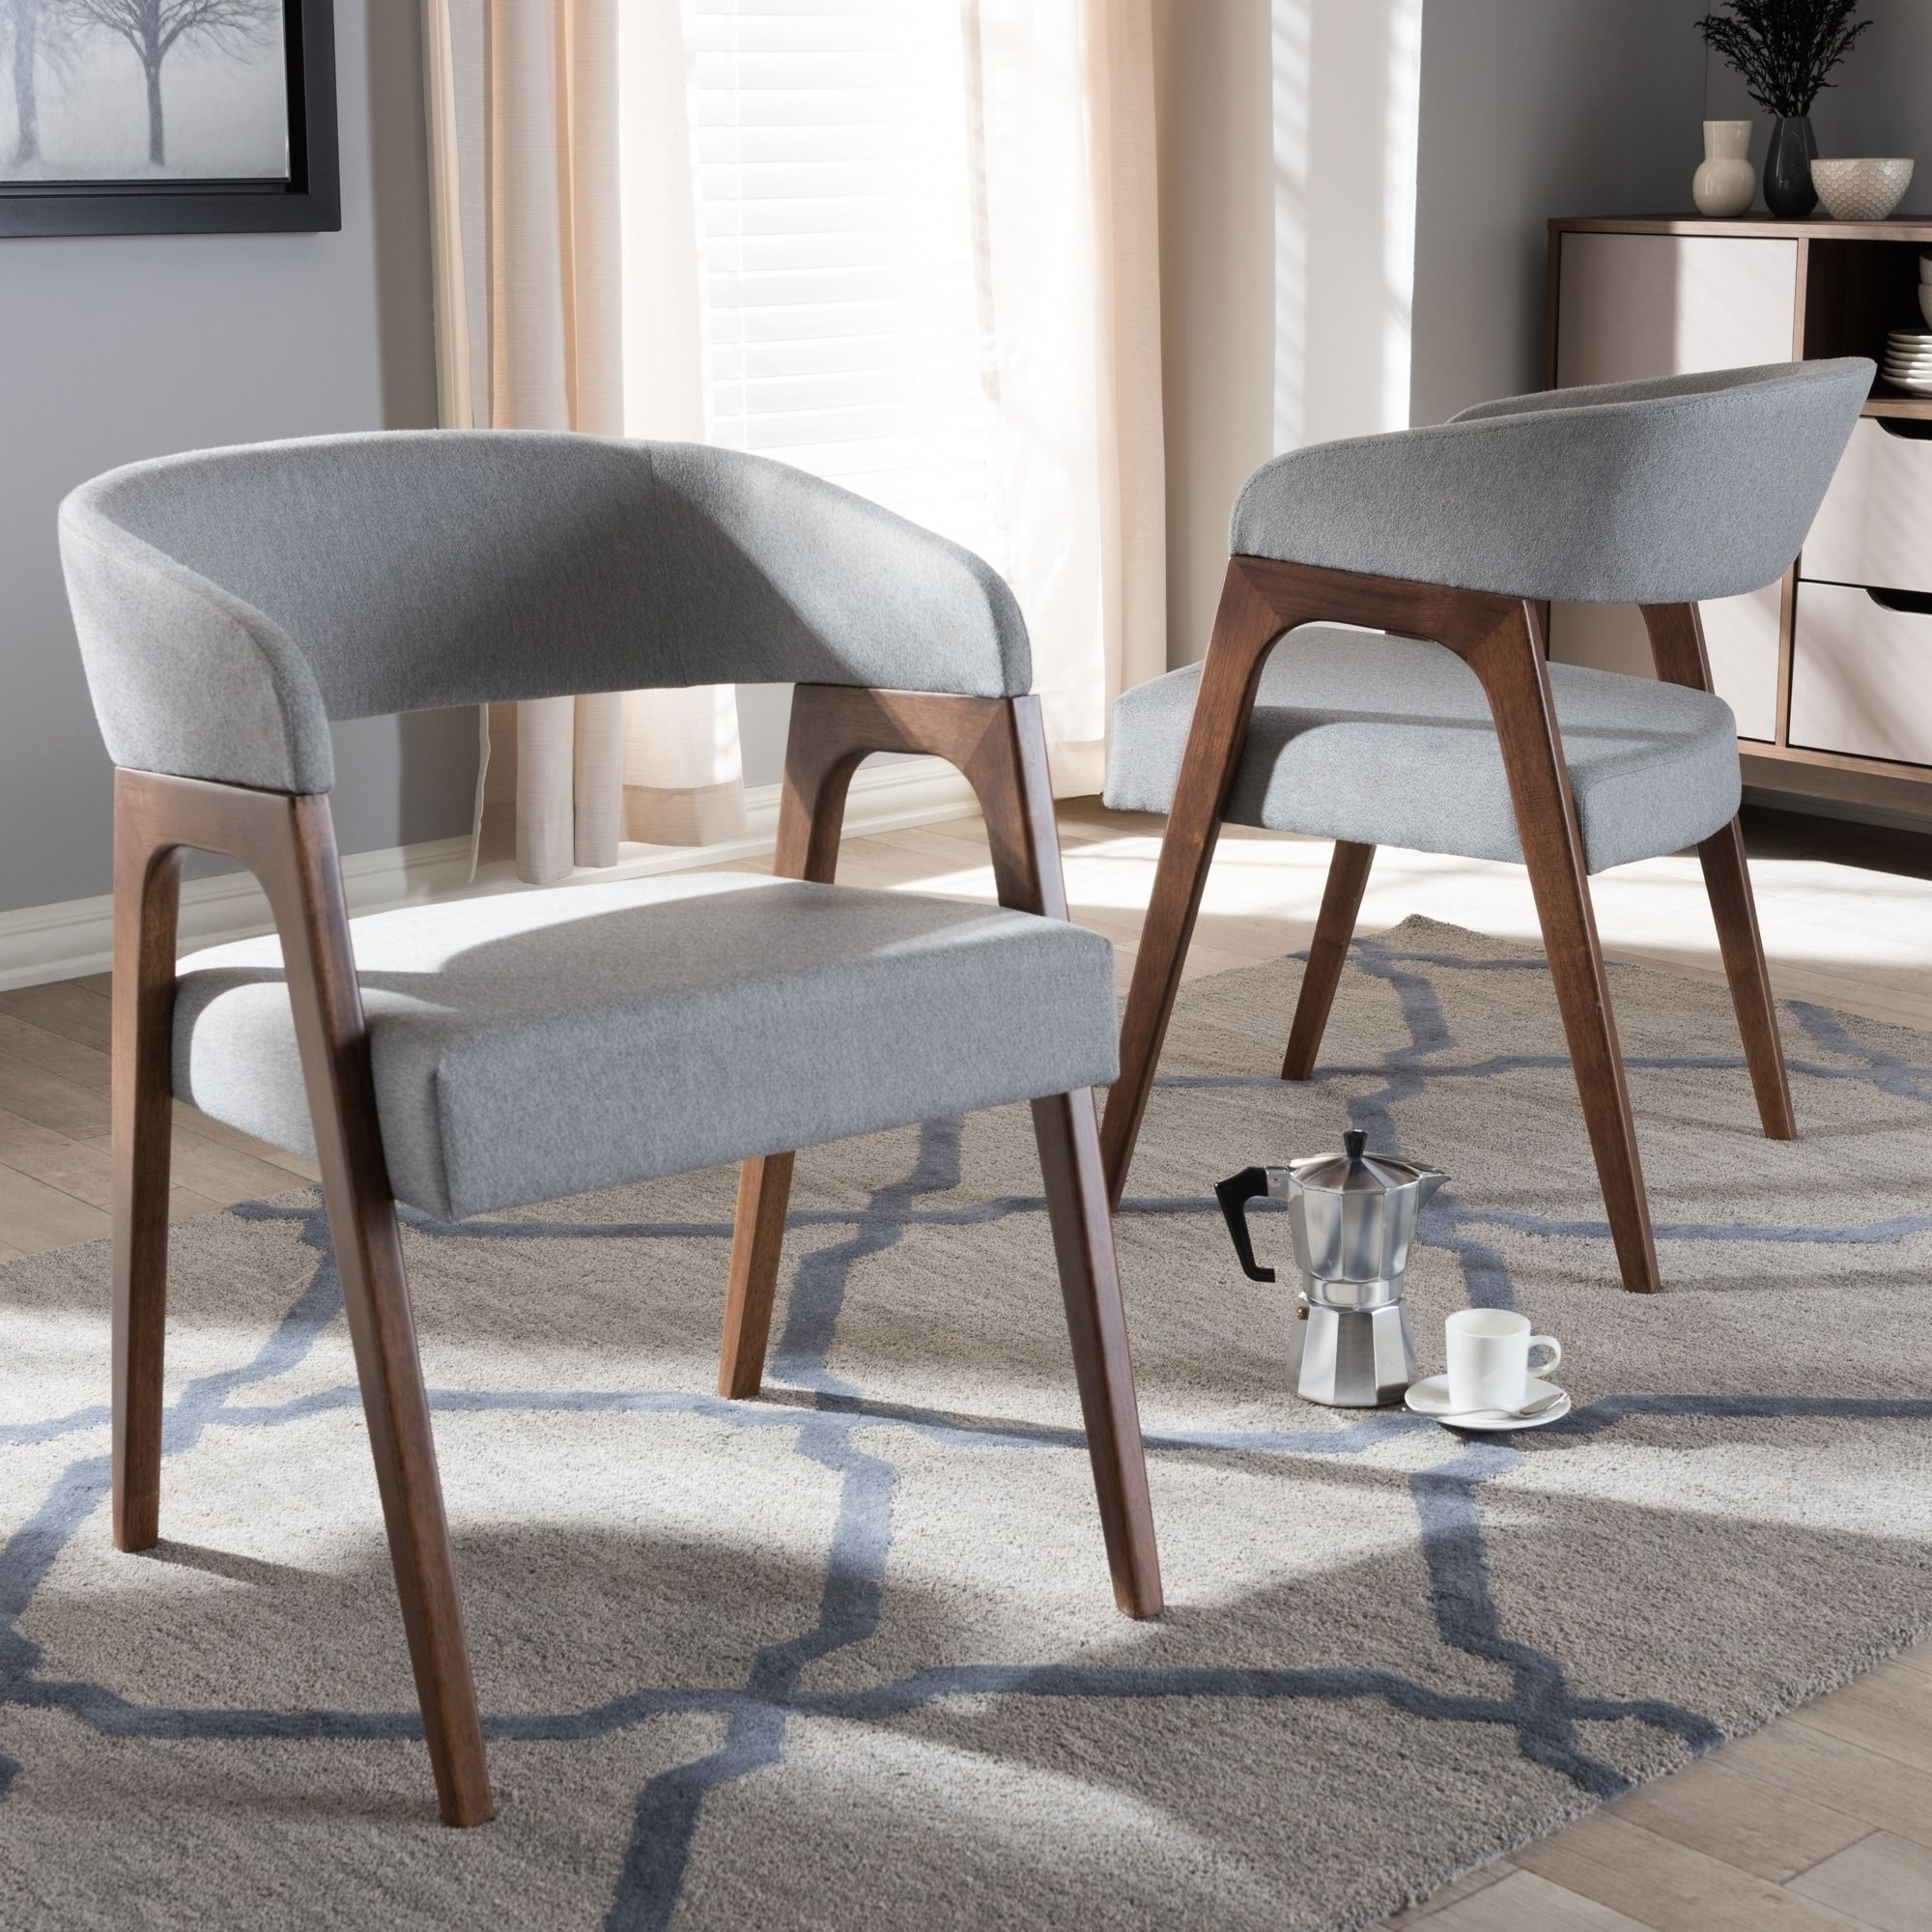 Weston Home Farmhouse Dining Chair With Cross Back (Set Of With Most Recently Released Carly 3 Piece Triangle Dining Sets (View 6 of 25)